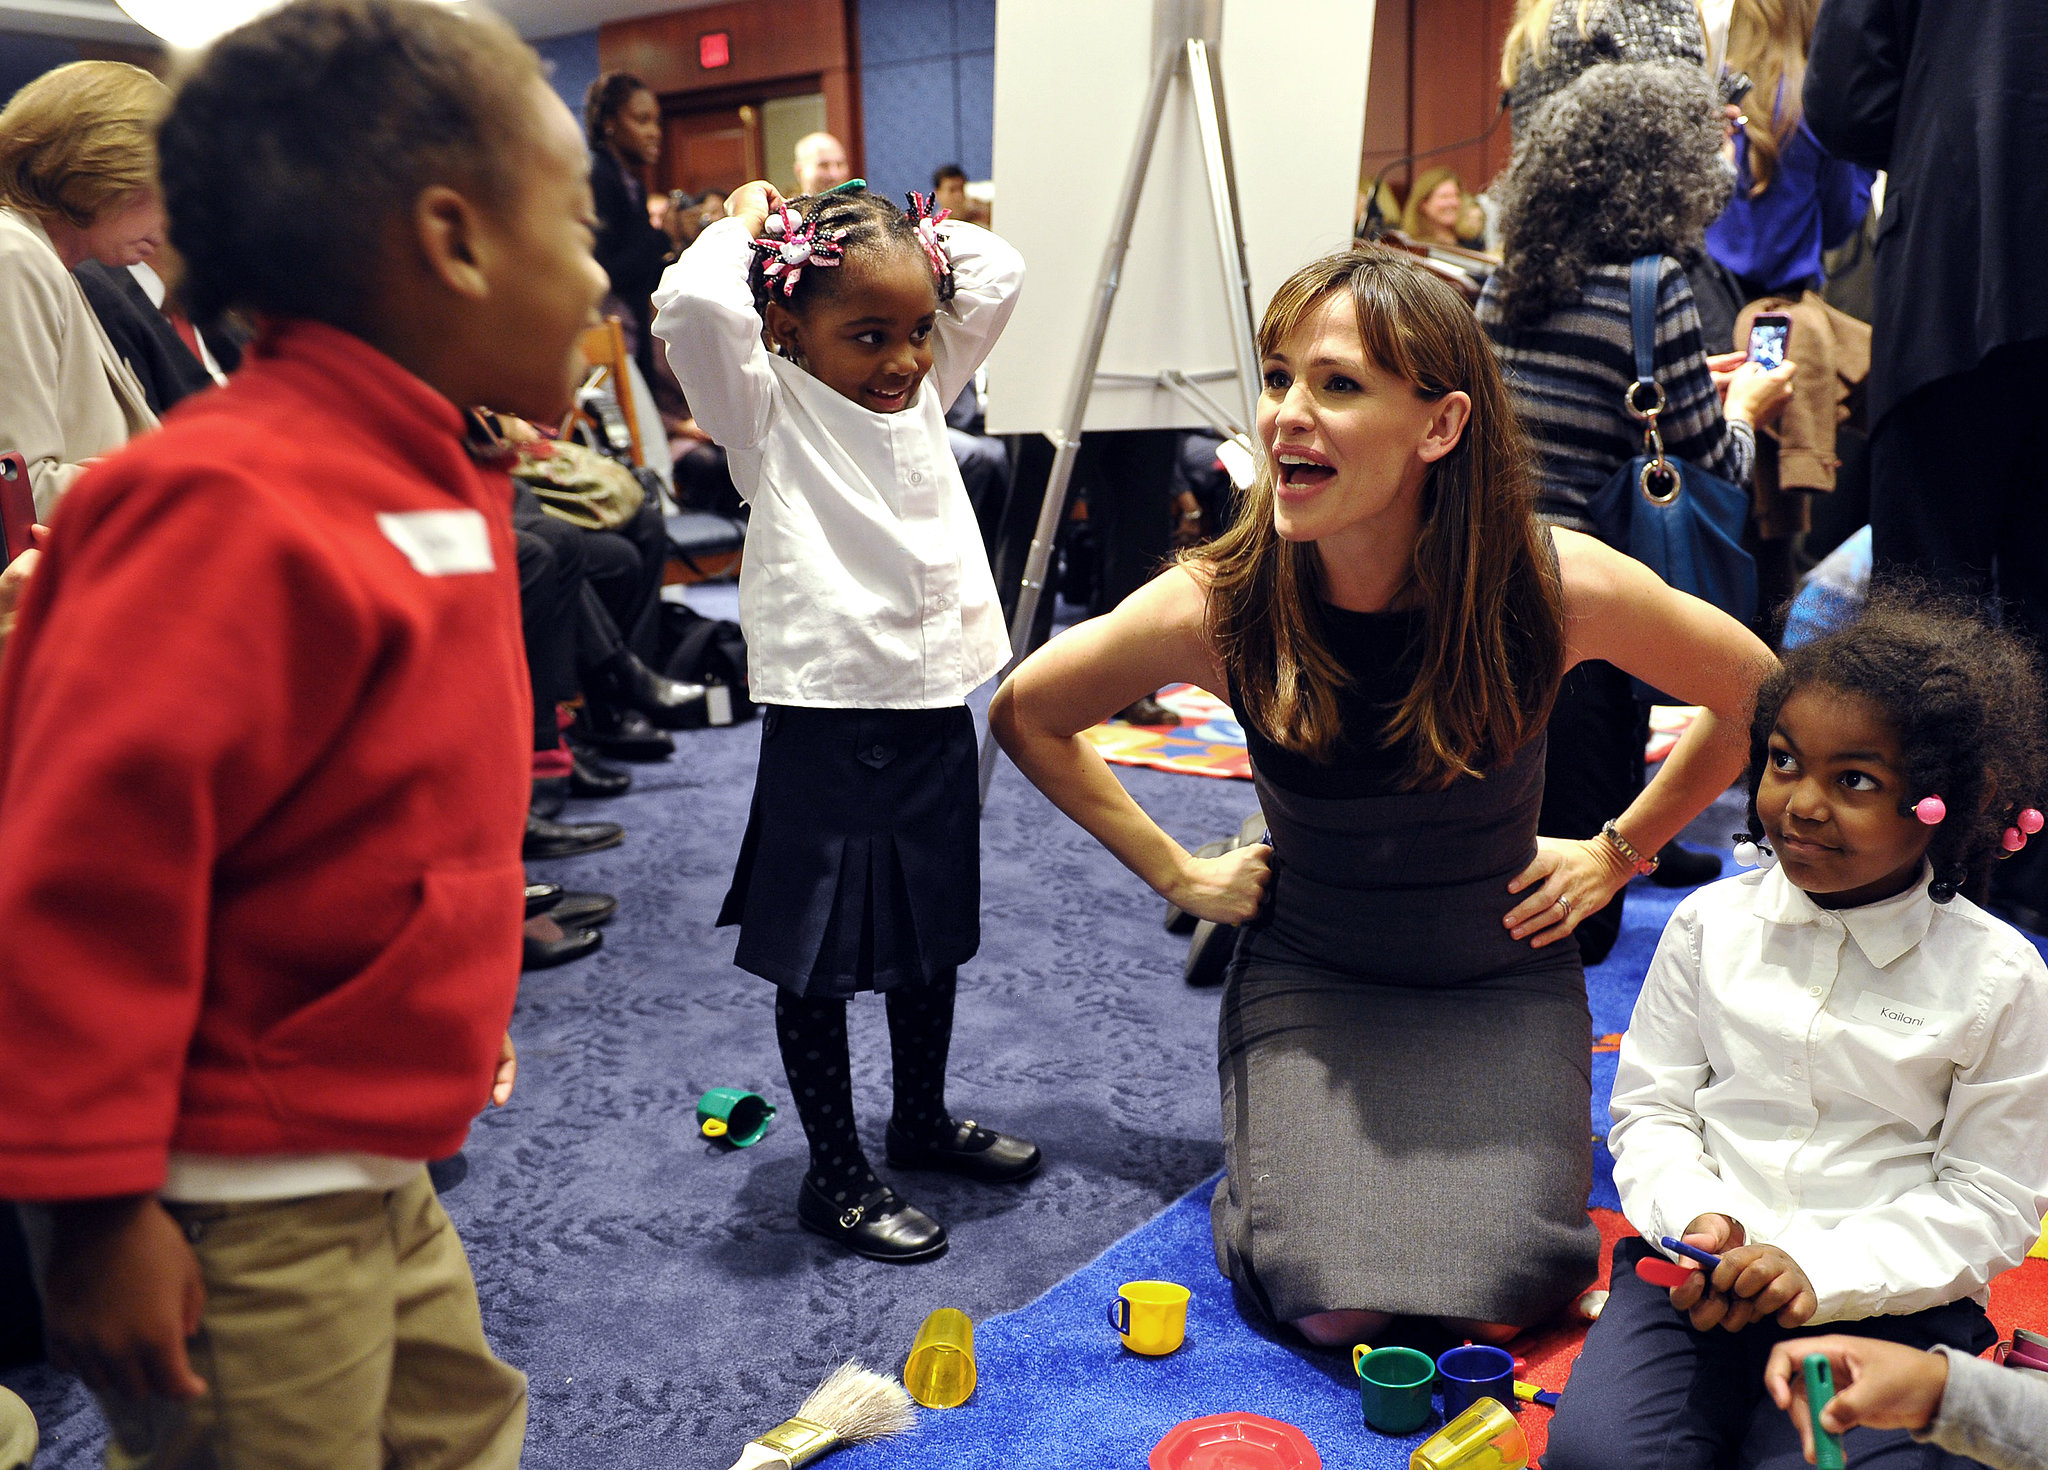 Jennifer Garner pushed for more early-education opportunities as the Save the Children artist ambassador during a trip to Washington DC.